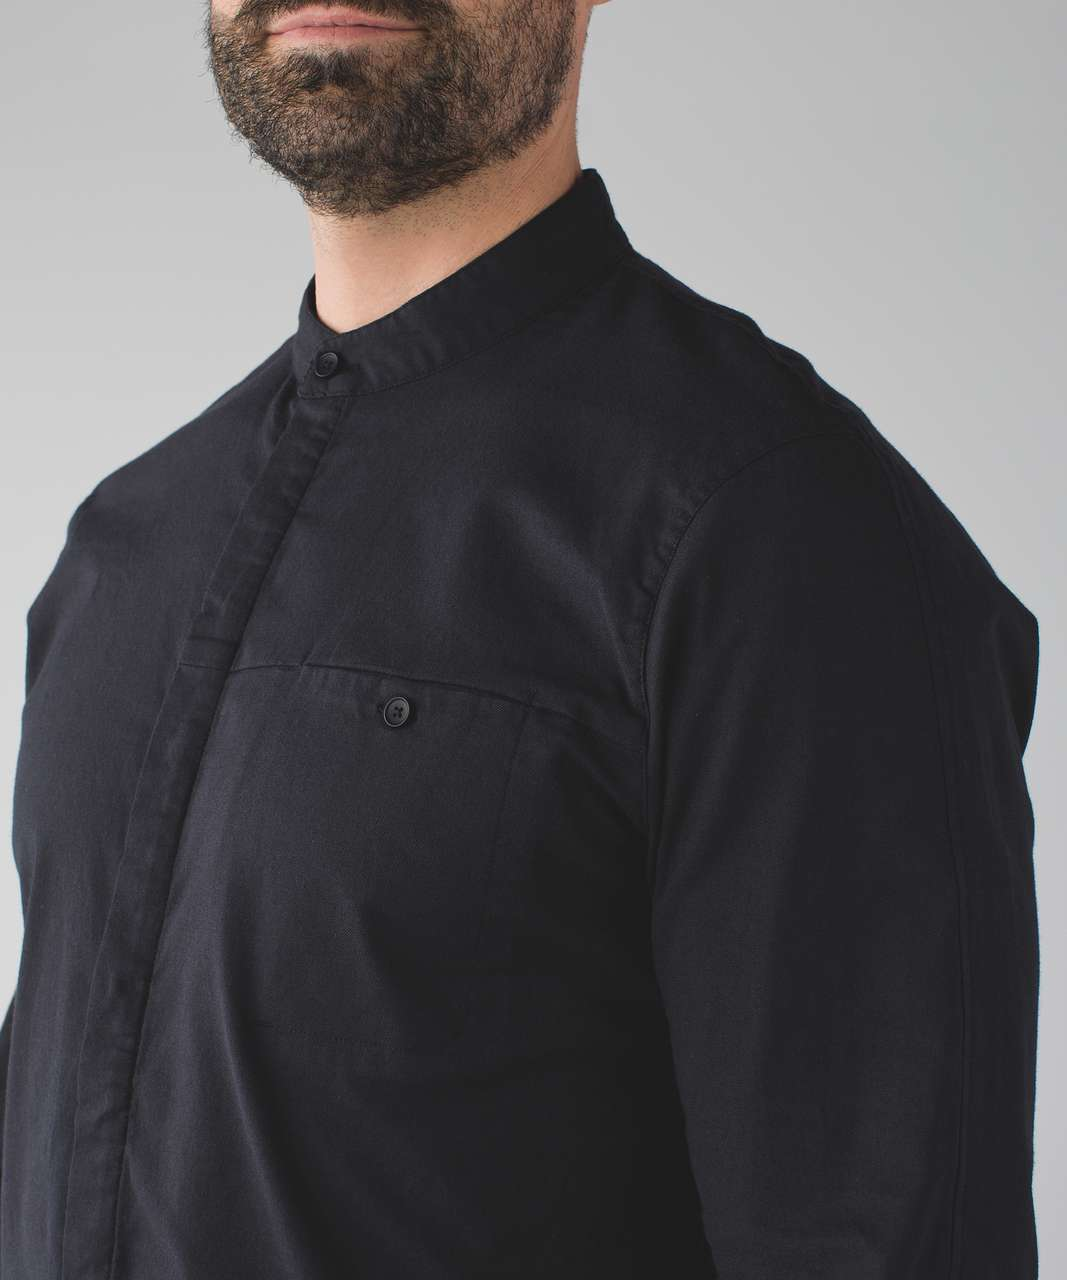 Lululemon Breezy Buttondown - Black